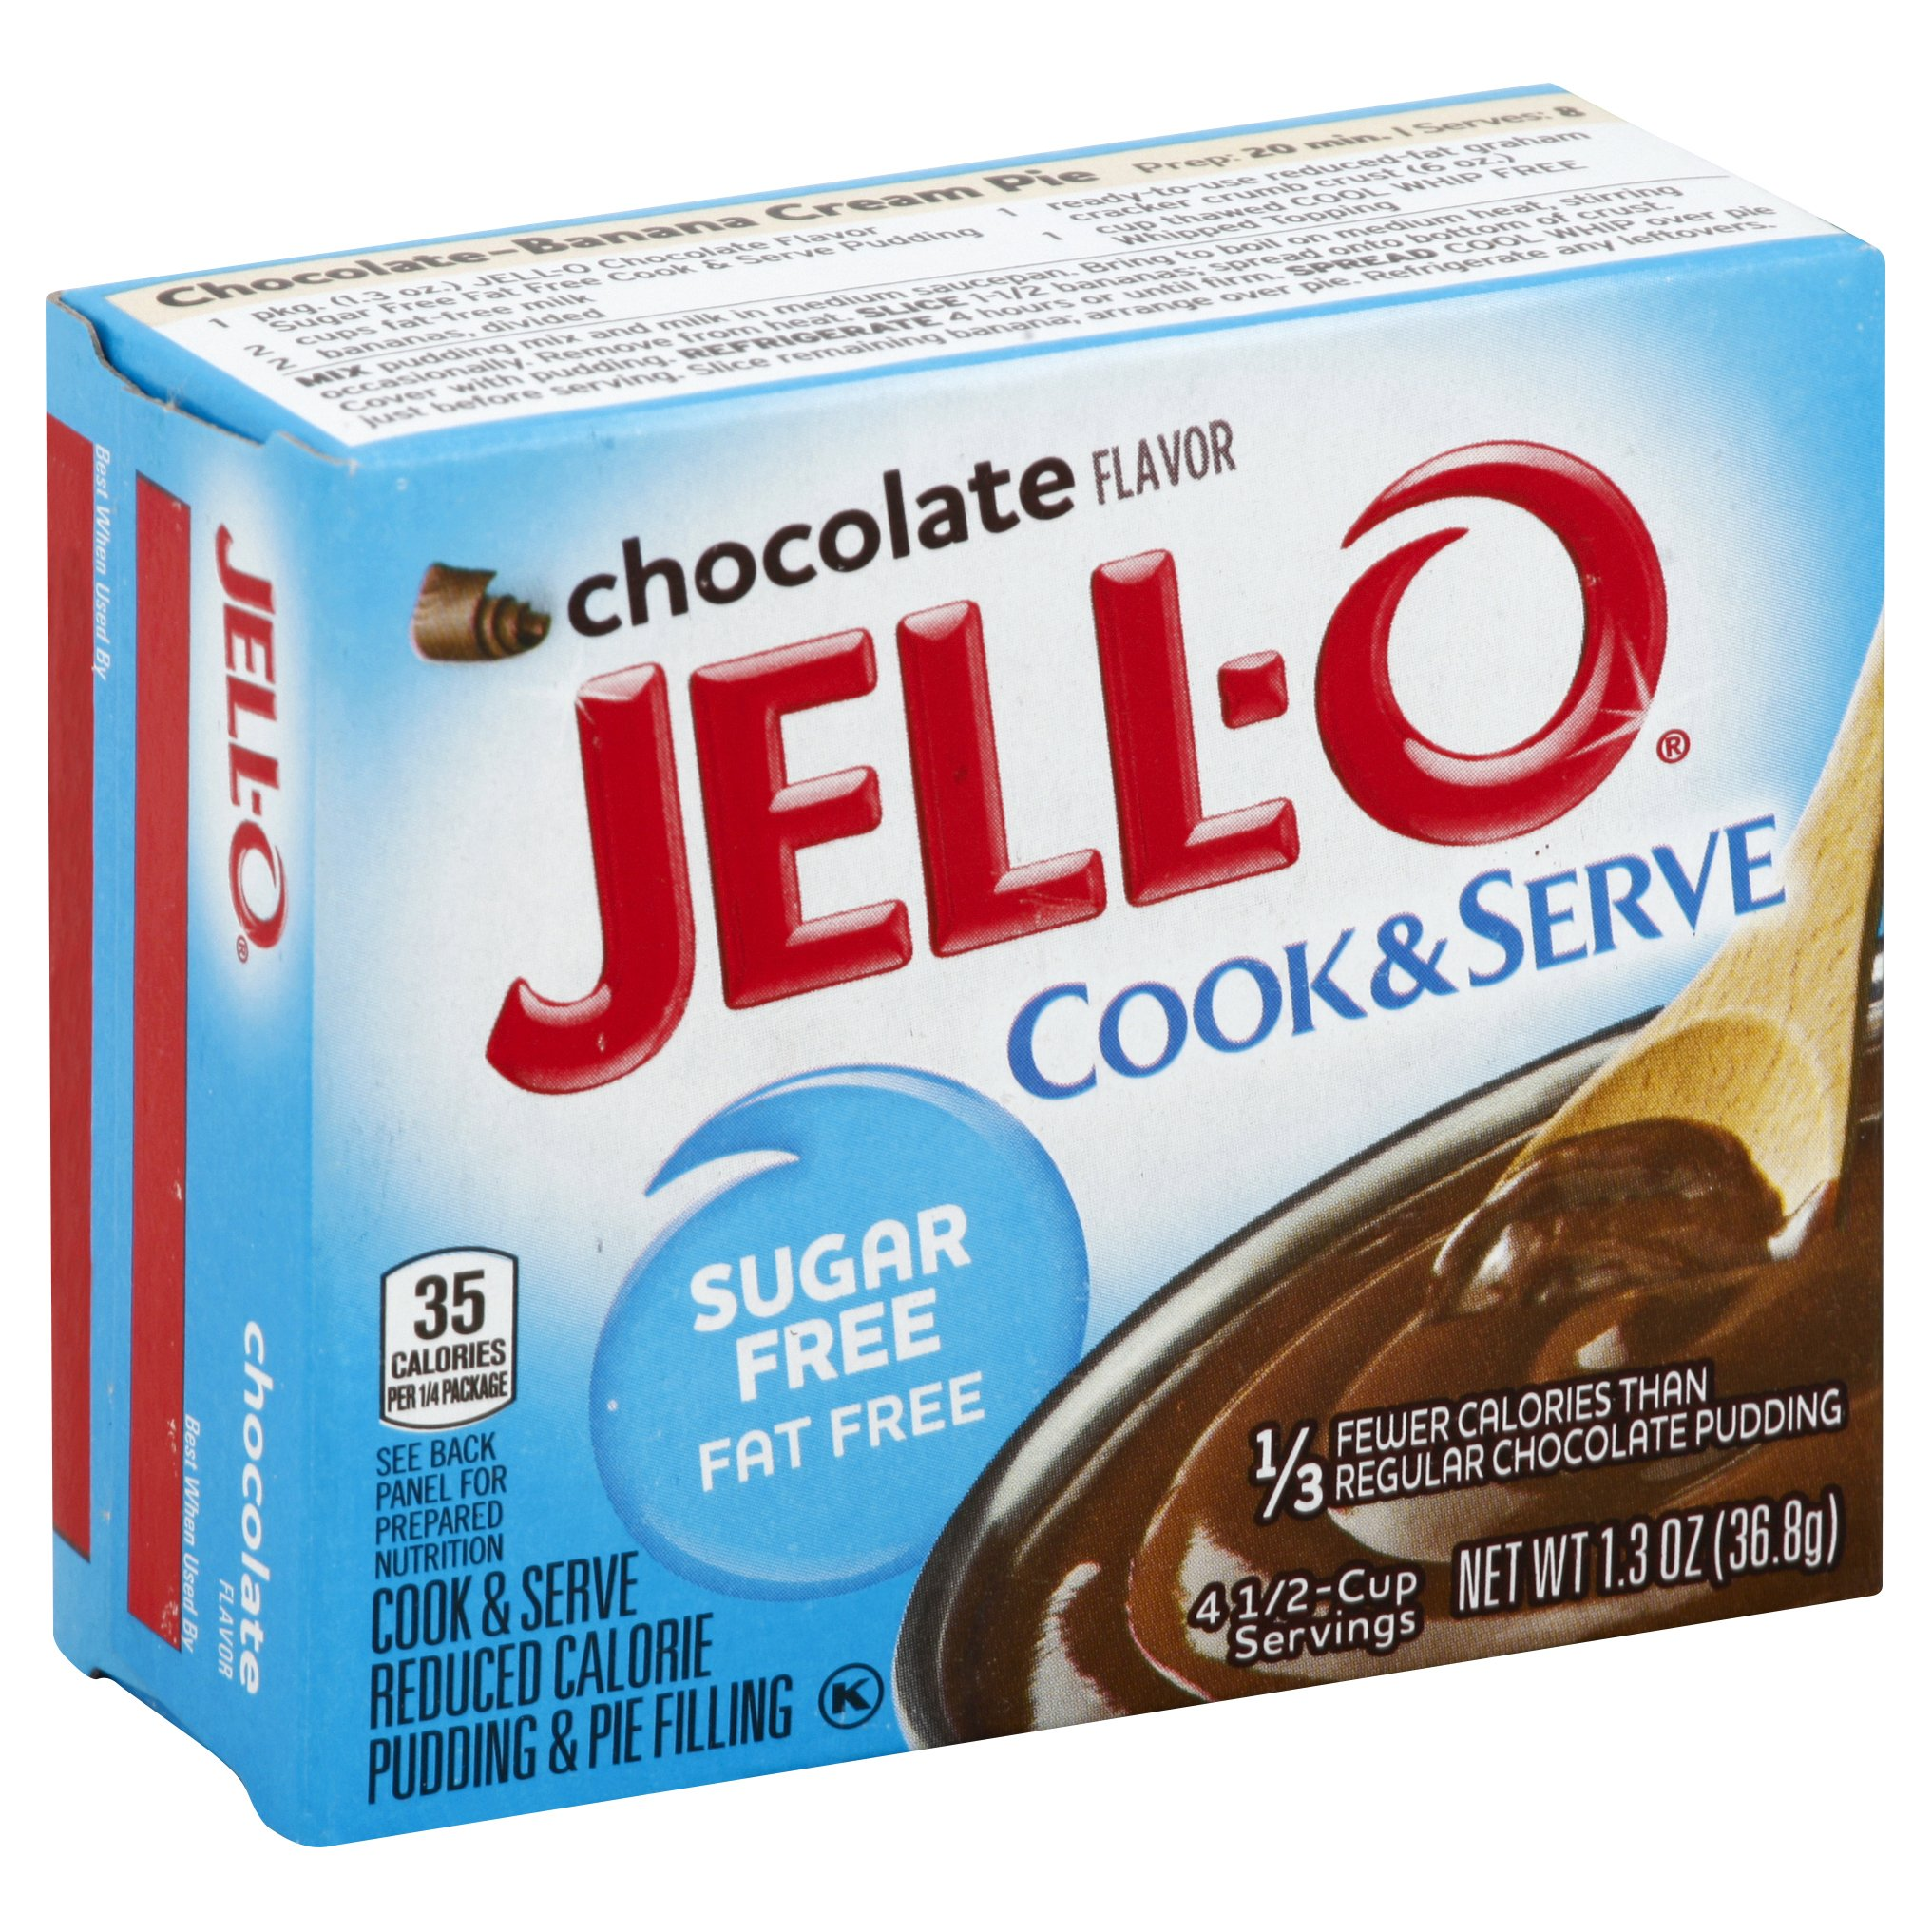 Jell-O Chocolate Sugar Free Fat Free 1OZ 24-Pack